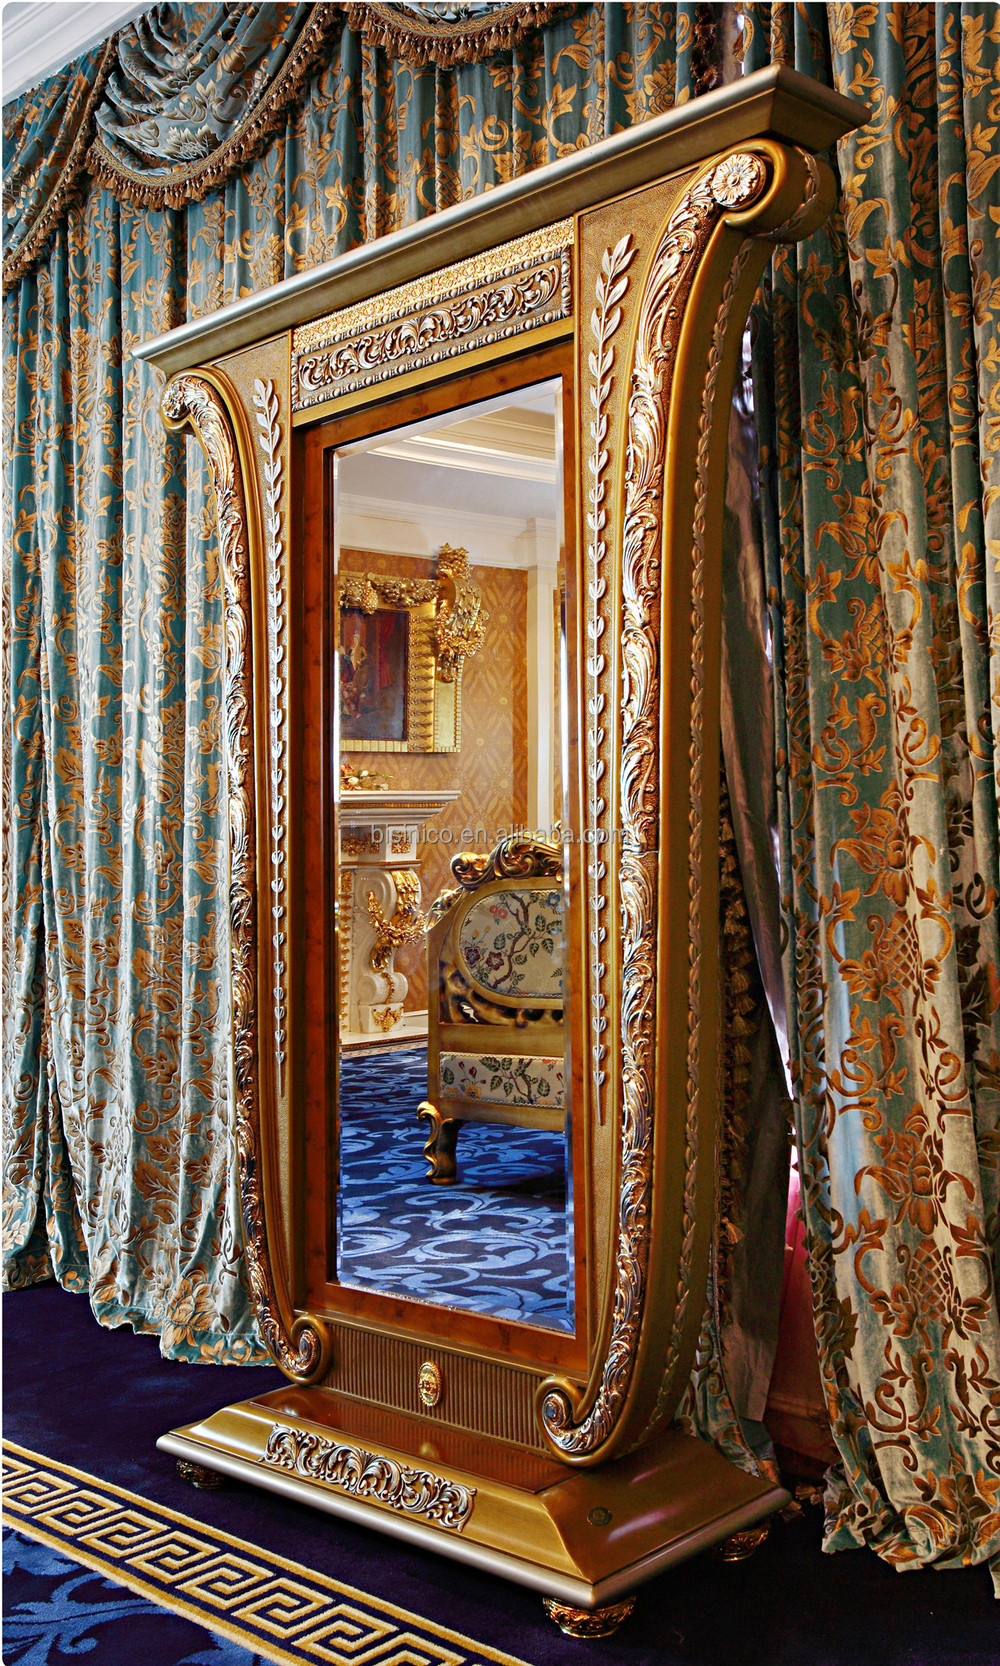 Louis Style Bedroom Furniture French Louis Xv Style Fantacy King Size Four Poster Bed Palace